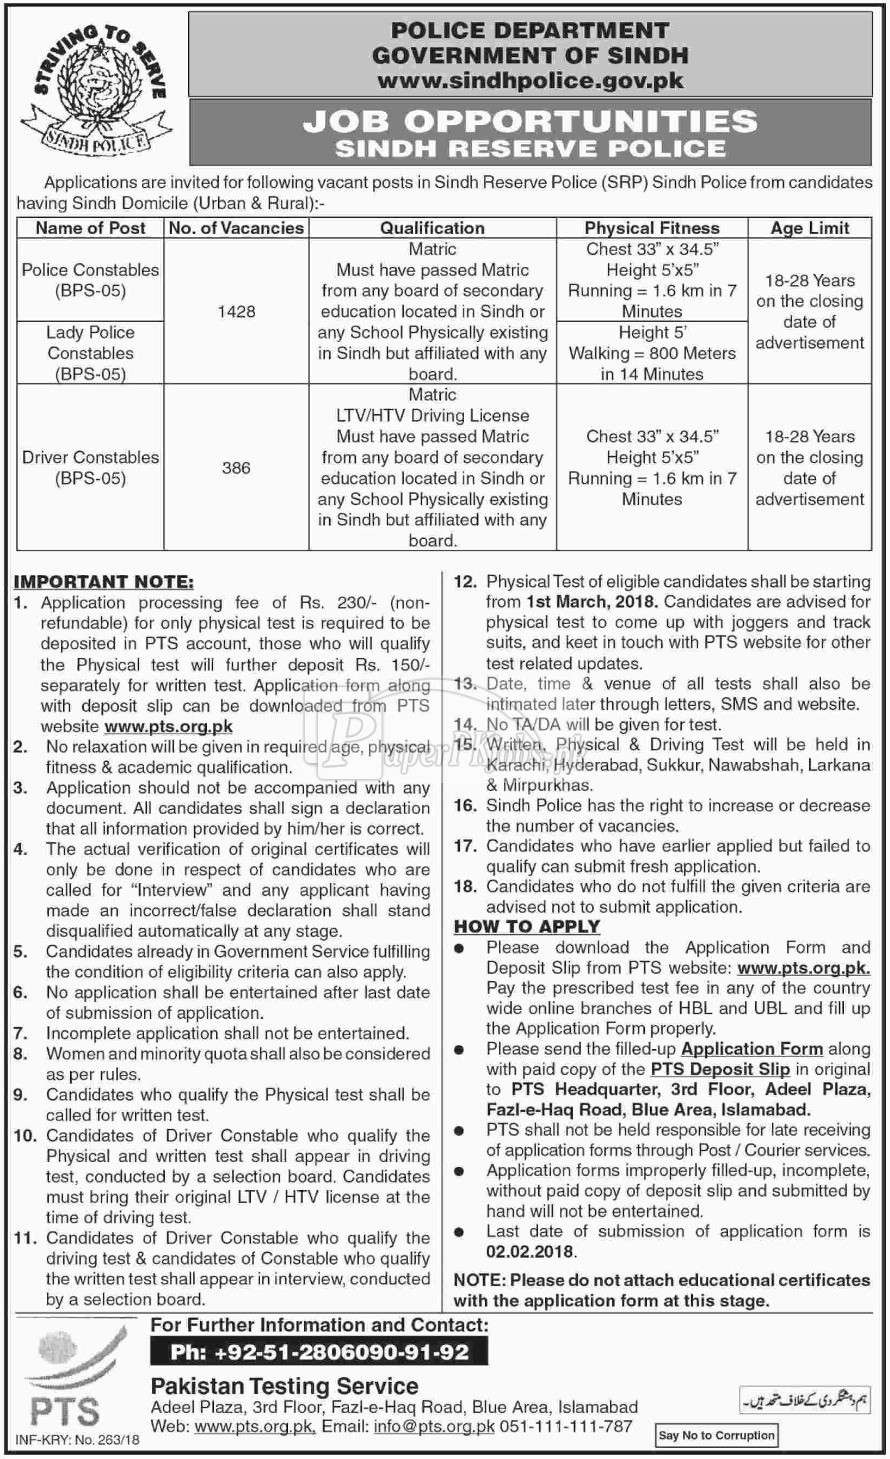 Police Department Government of Sindh PTS Jobs 2018